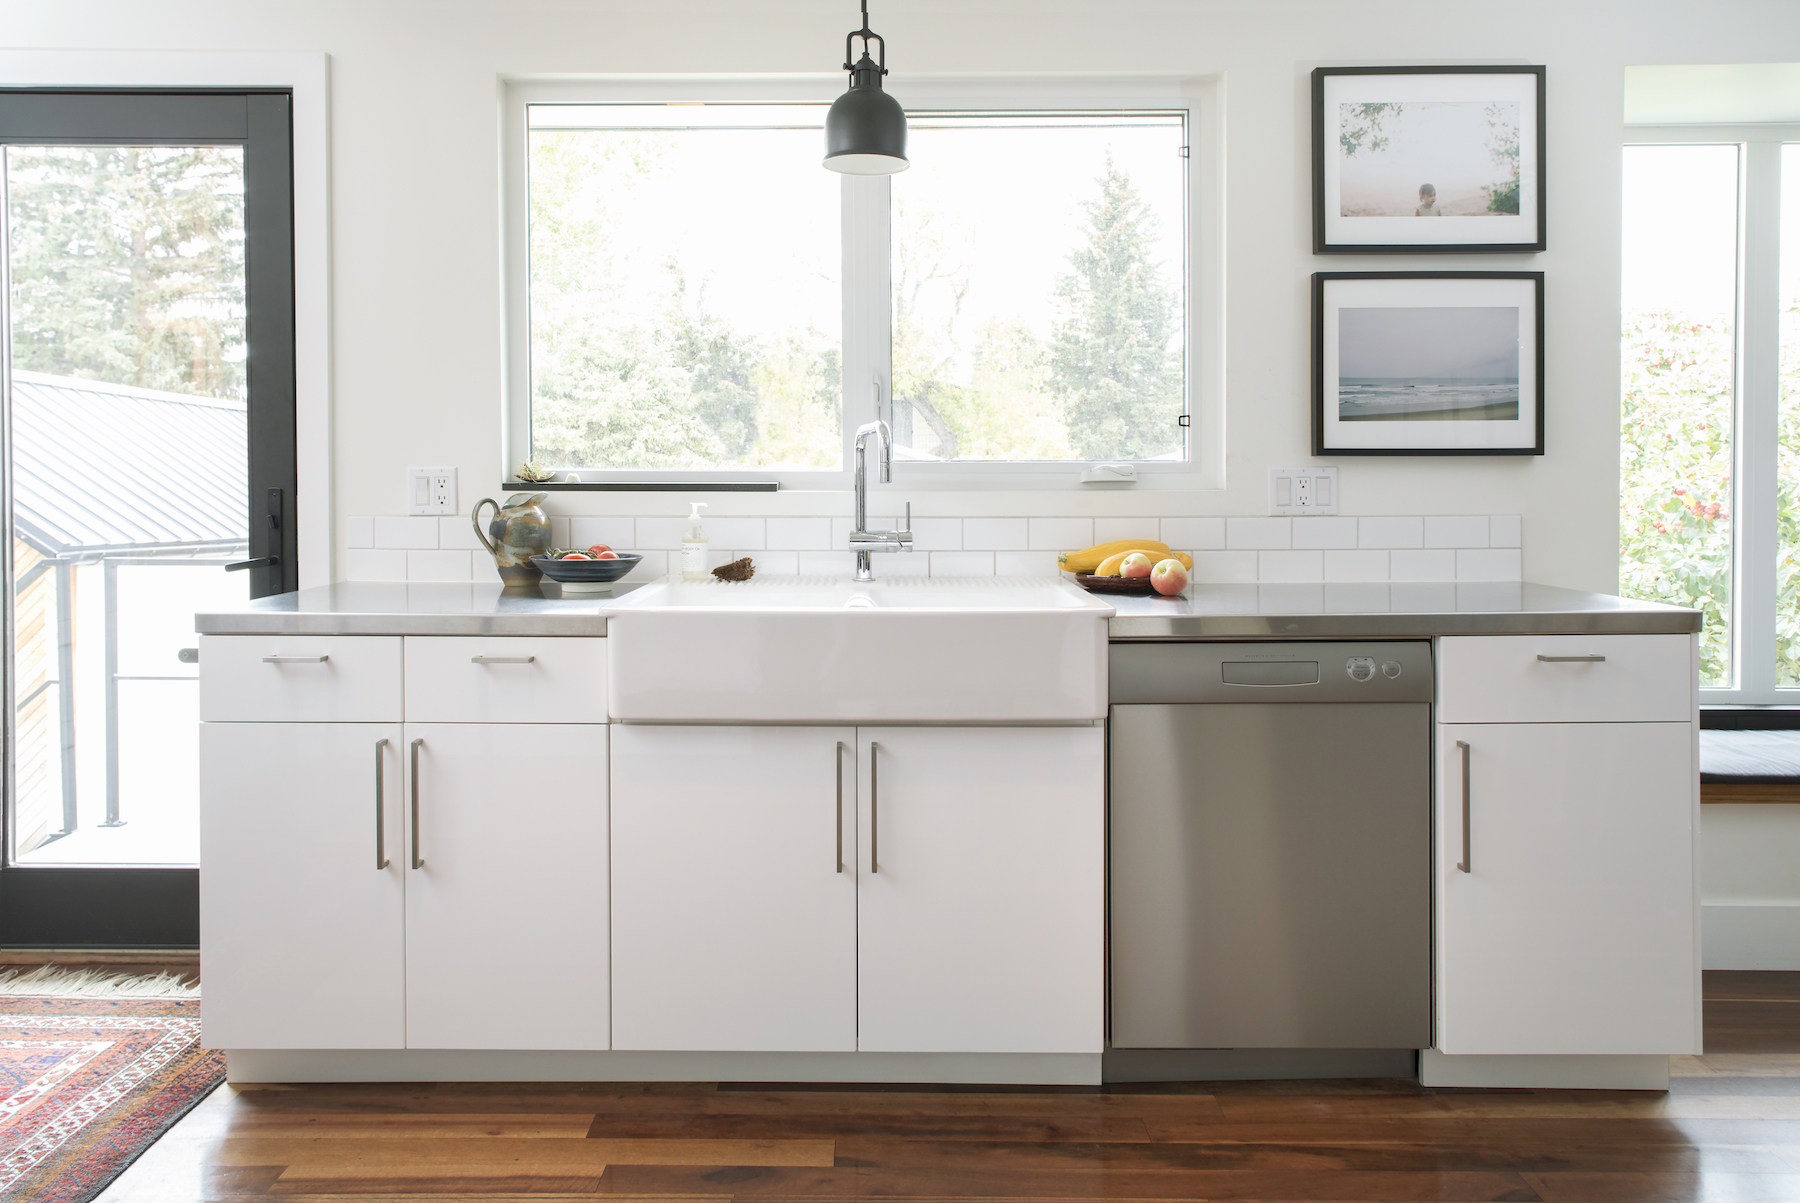 Things Nobody Tells You About Getting A Farmhouse Sink Real Simple